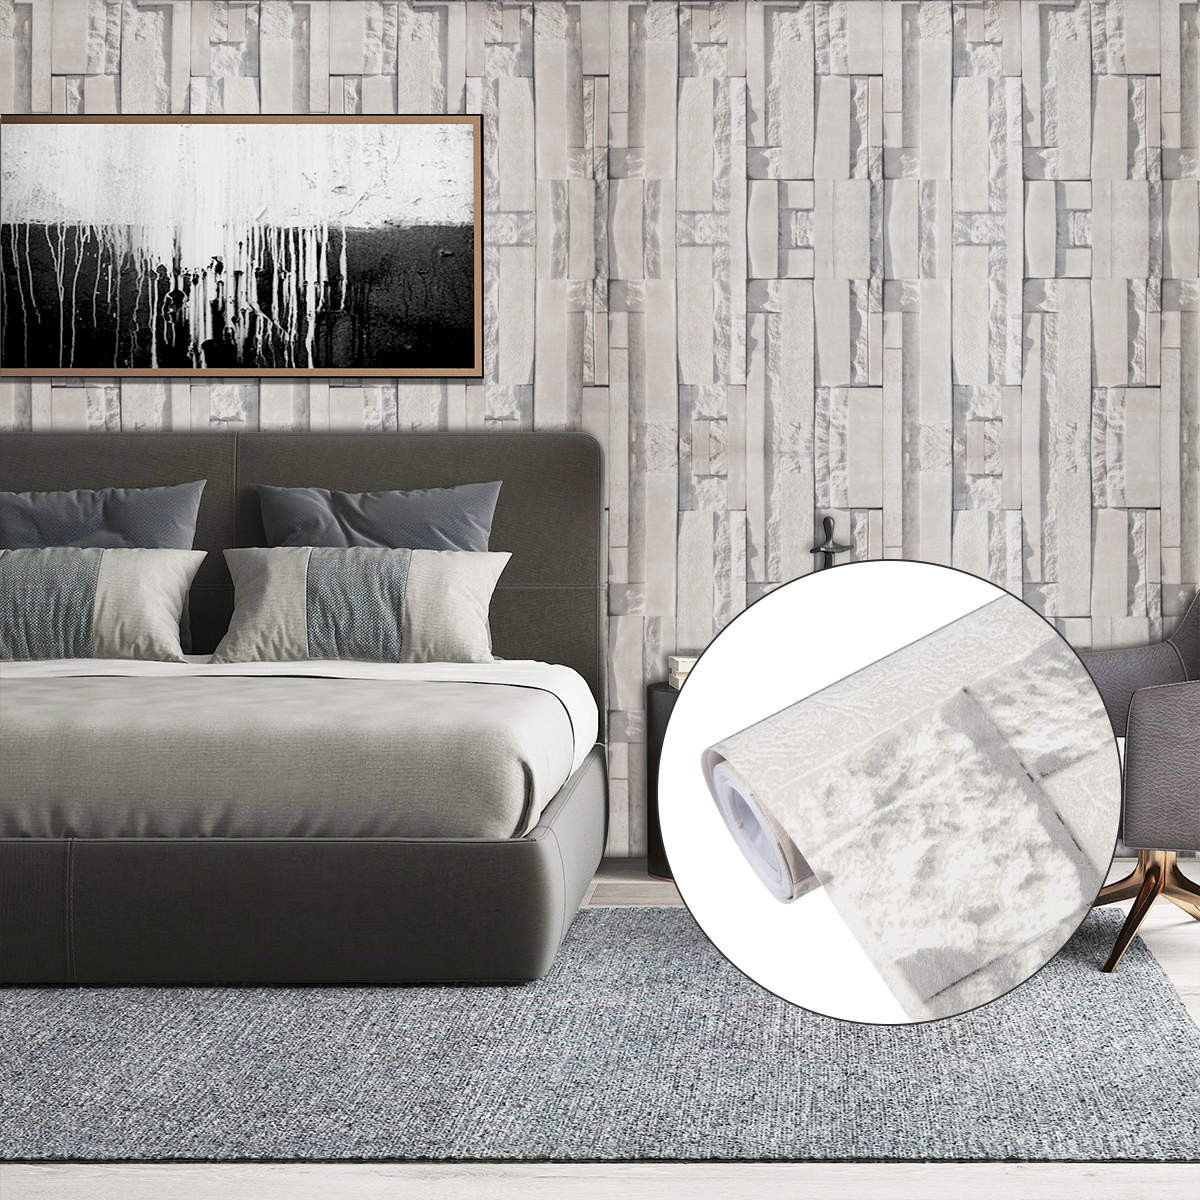 Home Cal Brick Peel And Stick Wallpaper Roll Waterproof Self Adhesive Brick Contact Paper Removable Shelf Paper Pvc Wall Paper Covering 1 48 X 16 4ft Grey Plastic Scraper Included 2 Pack